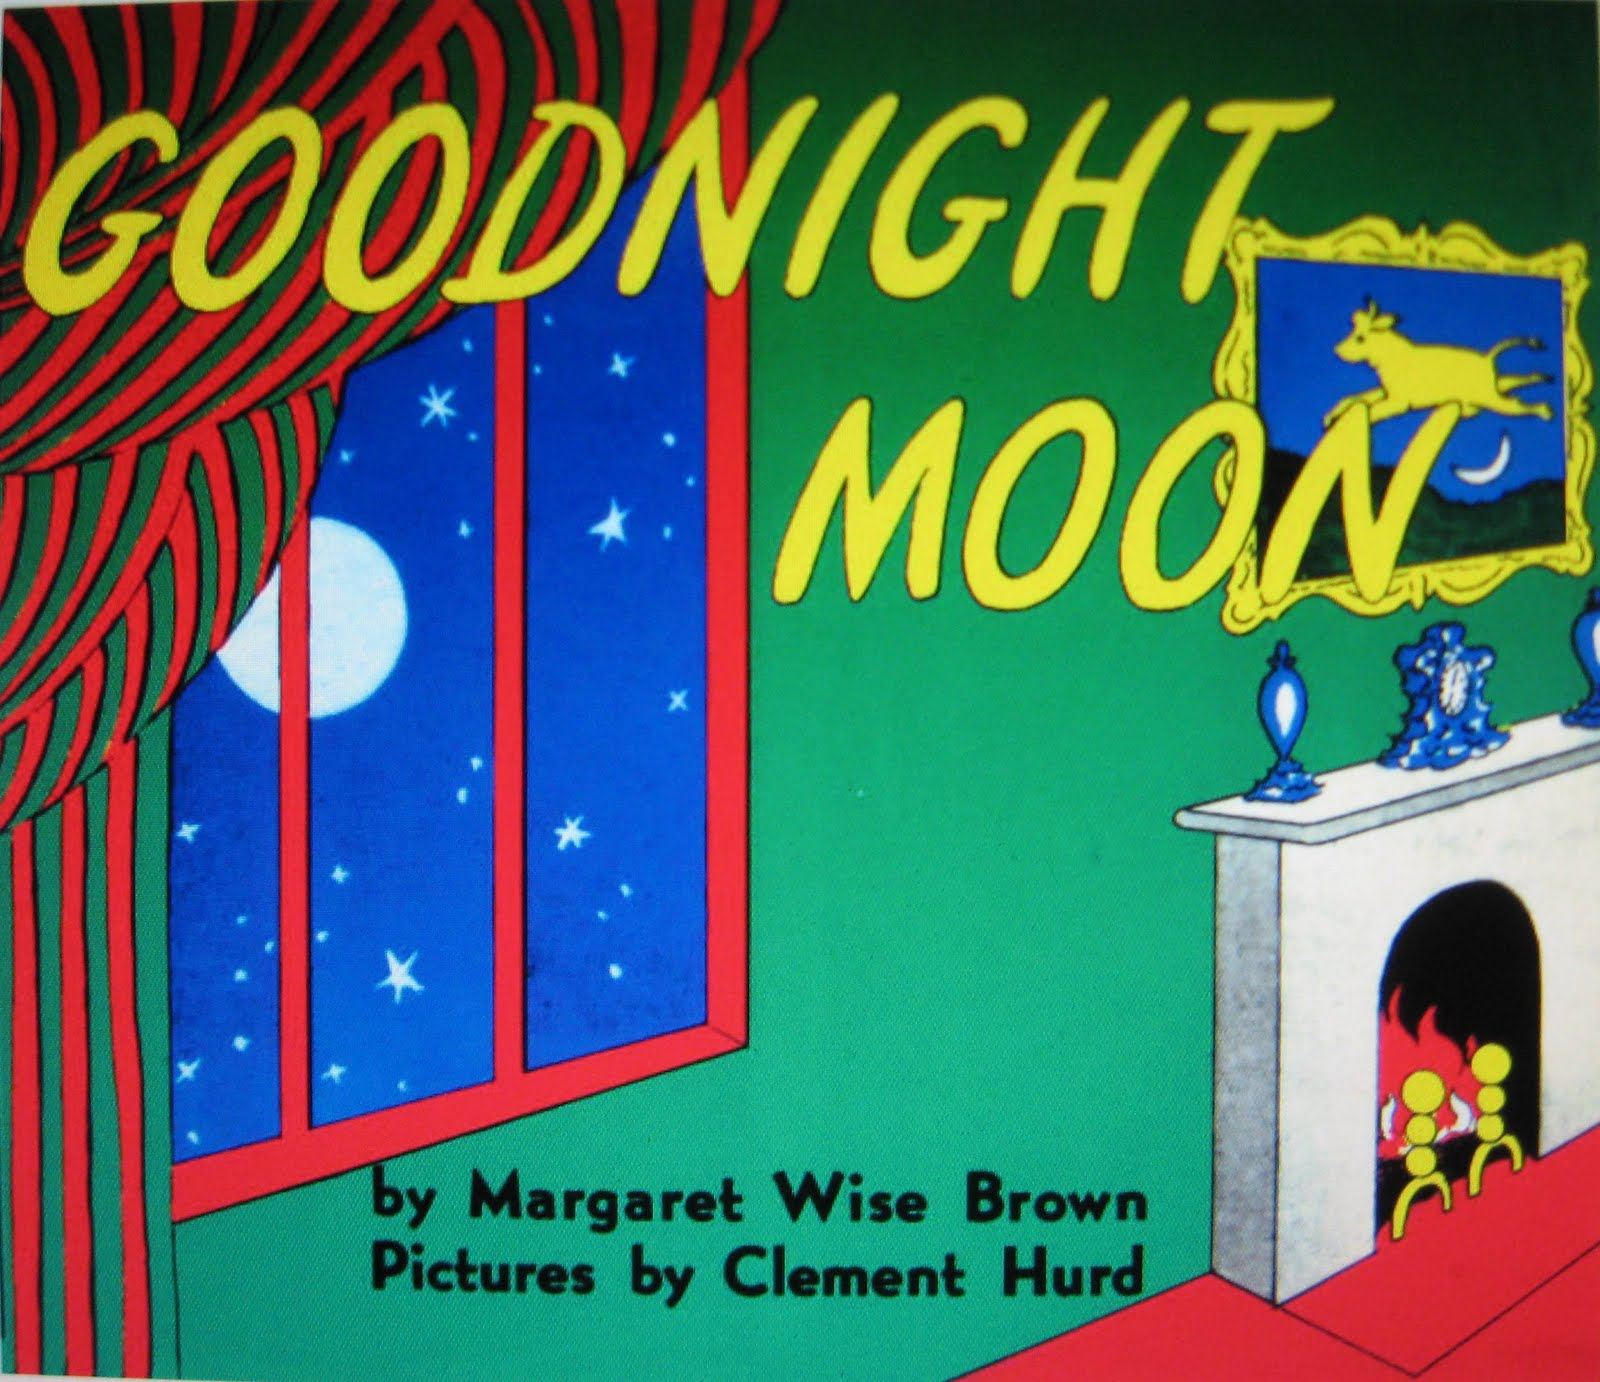 I witness to the moon alice margaret wise browns classic childrens book is the ultimate if unlikely source for the third song goodnight moon transformed by nashville hexwebz Choice Image